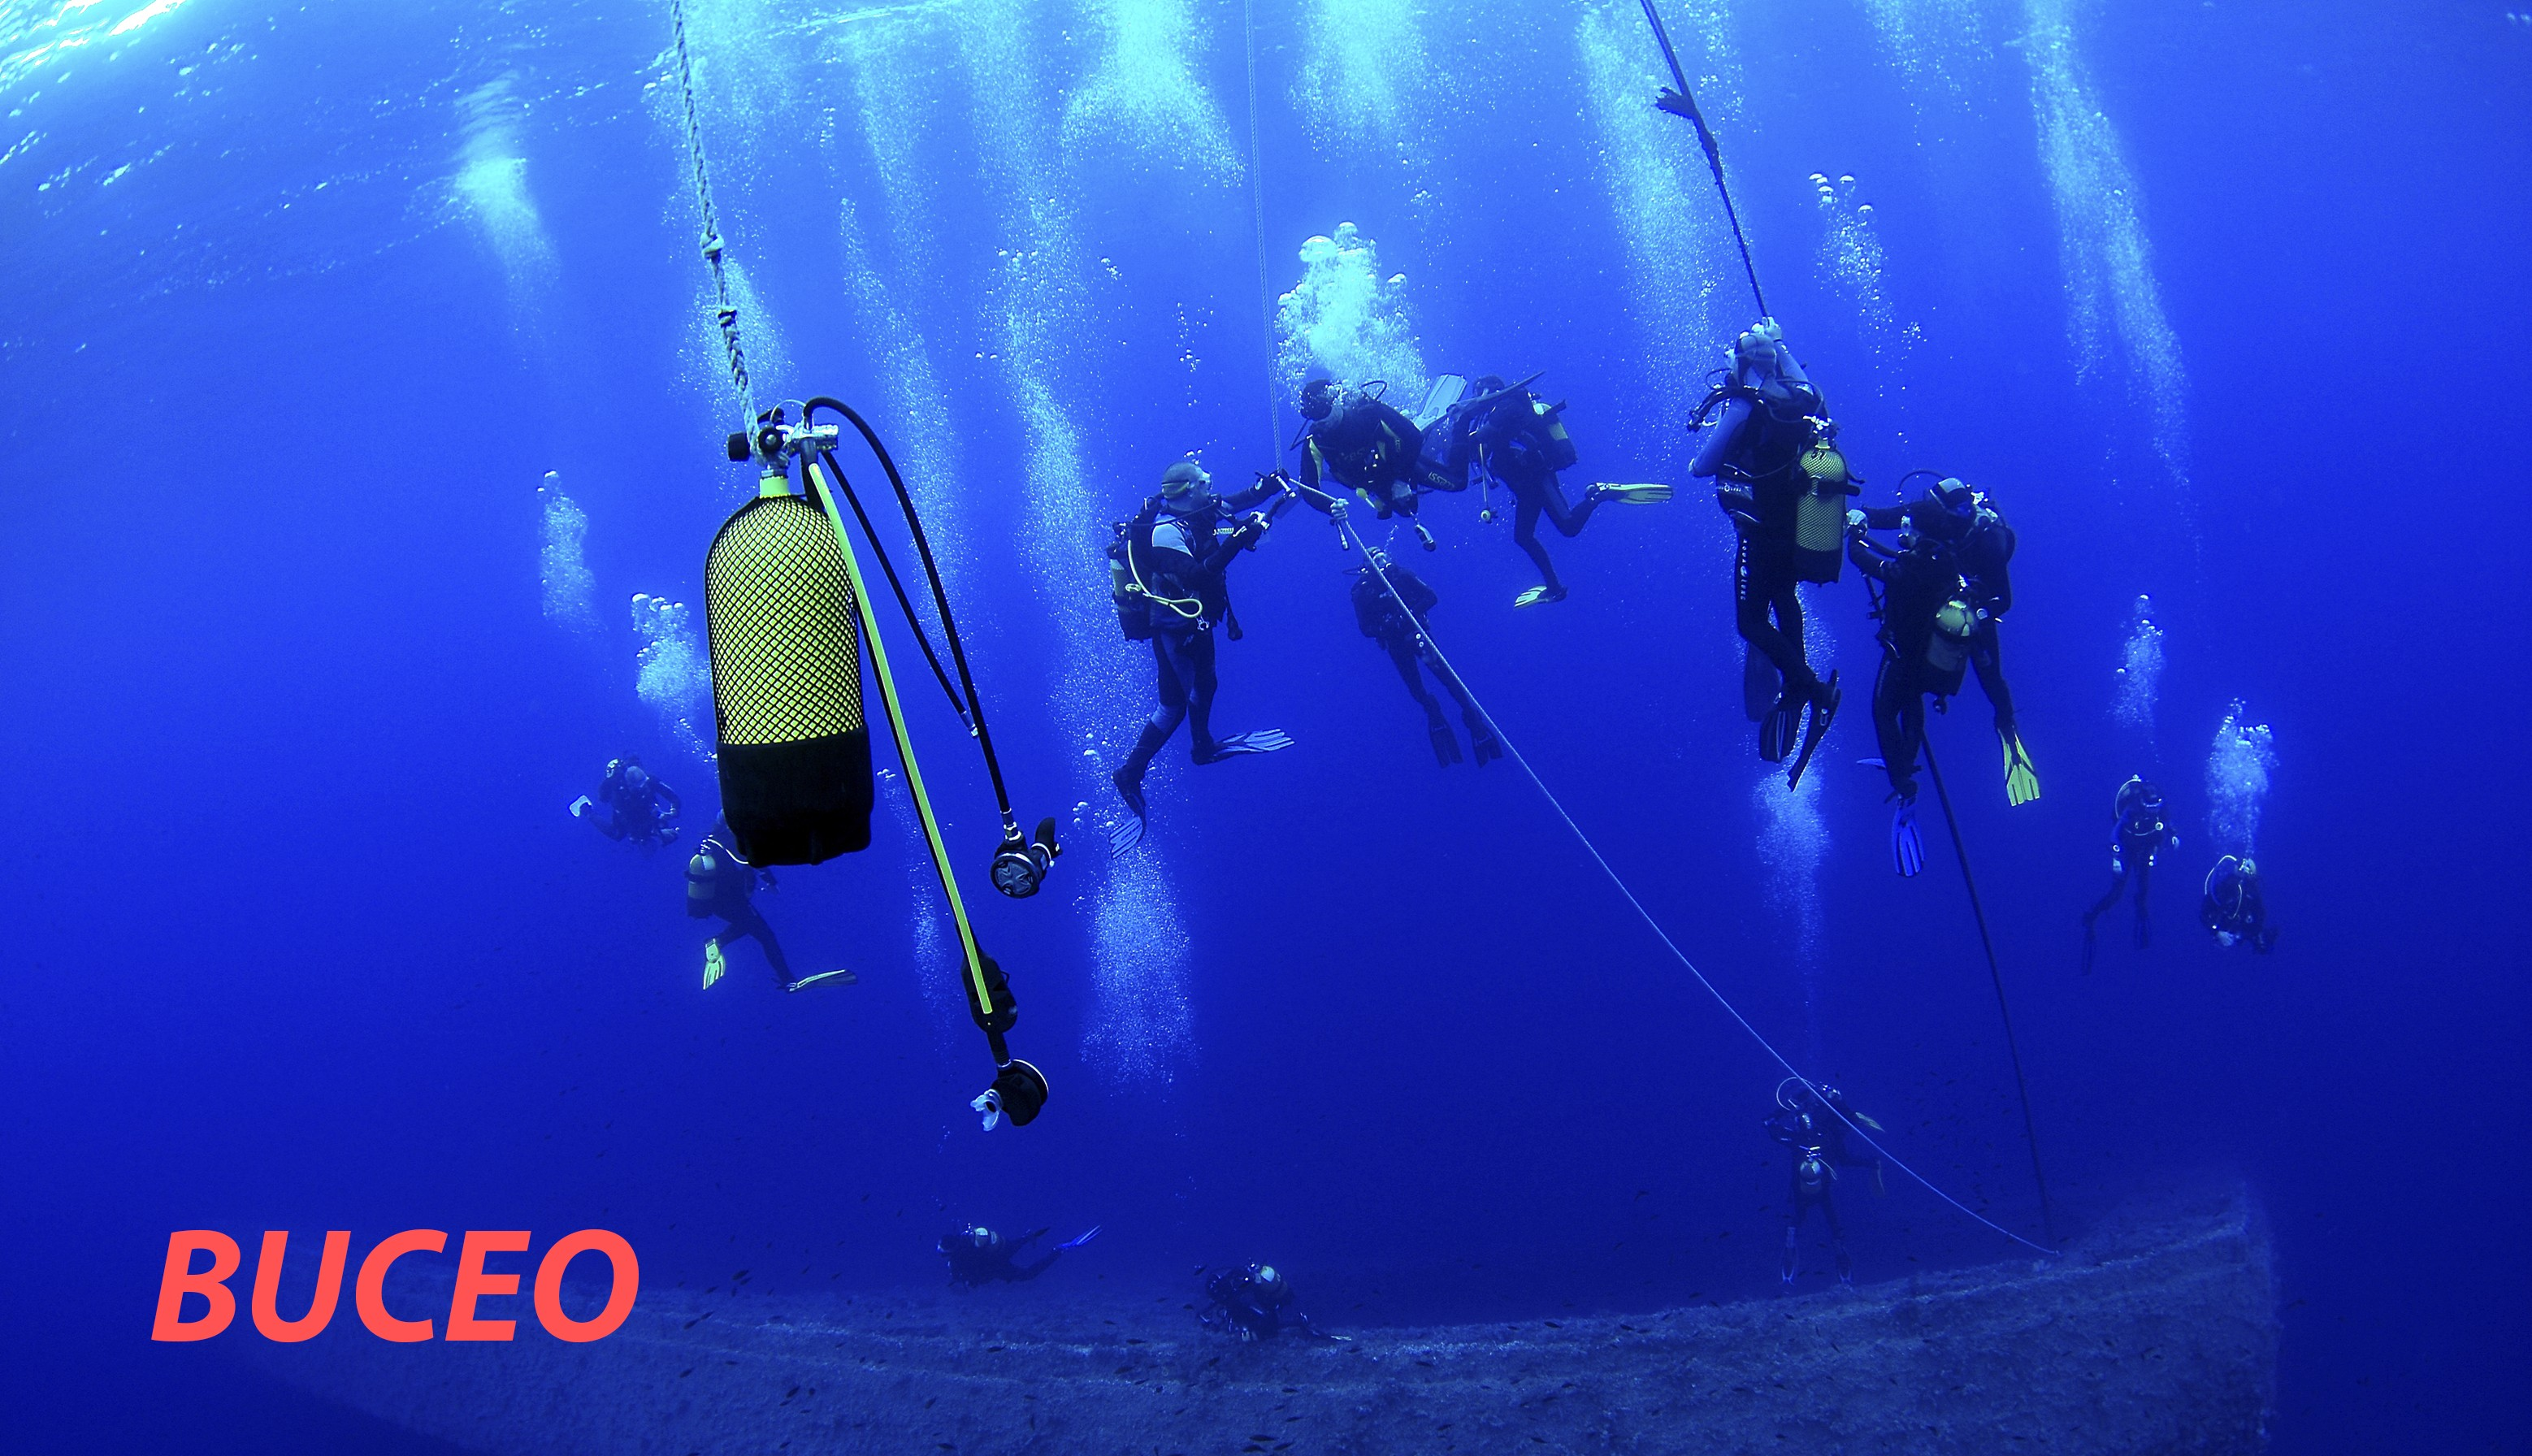 BUCEO-1